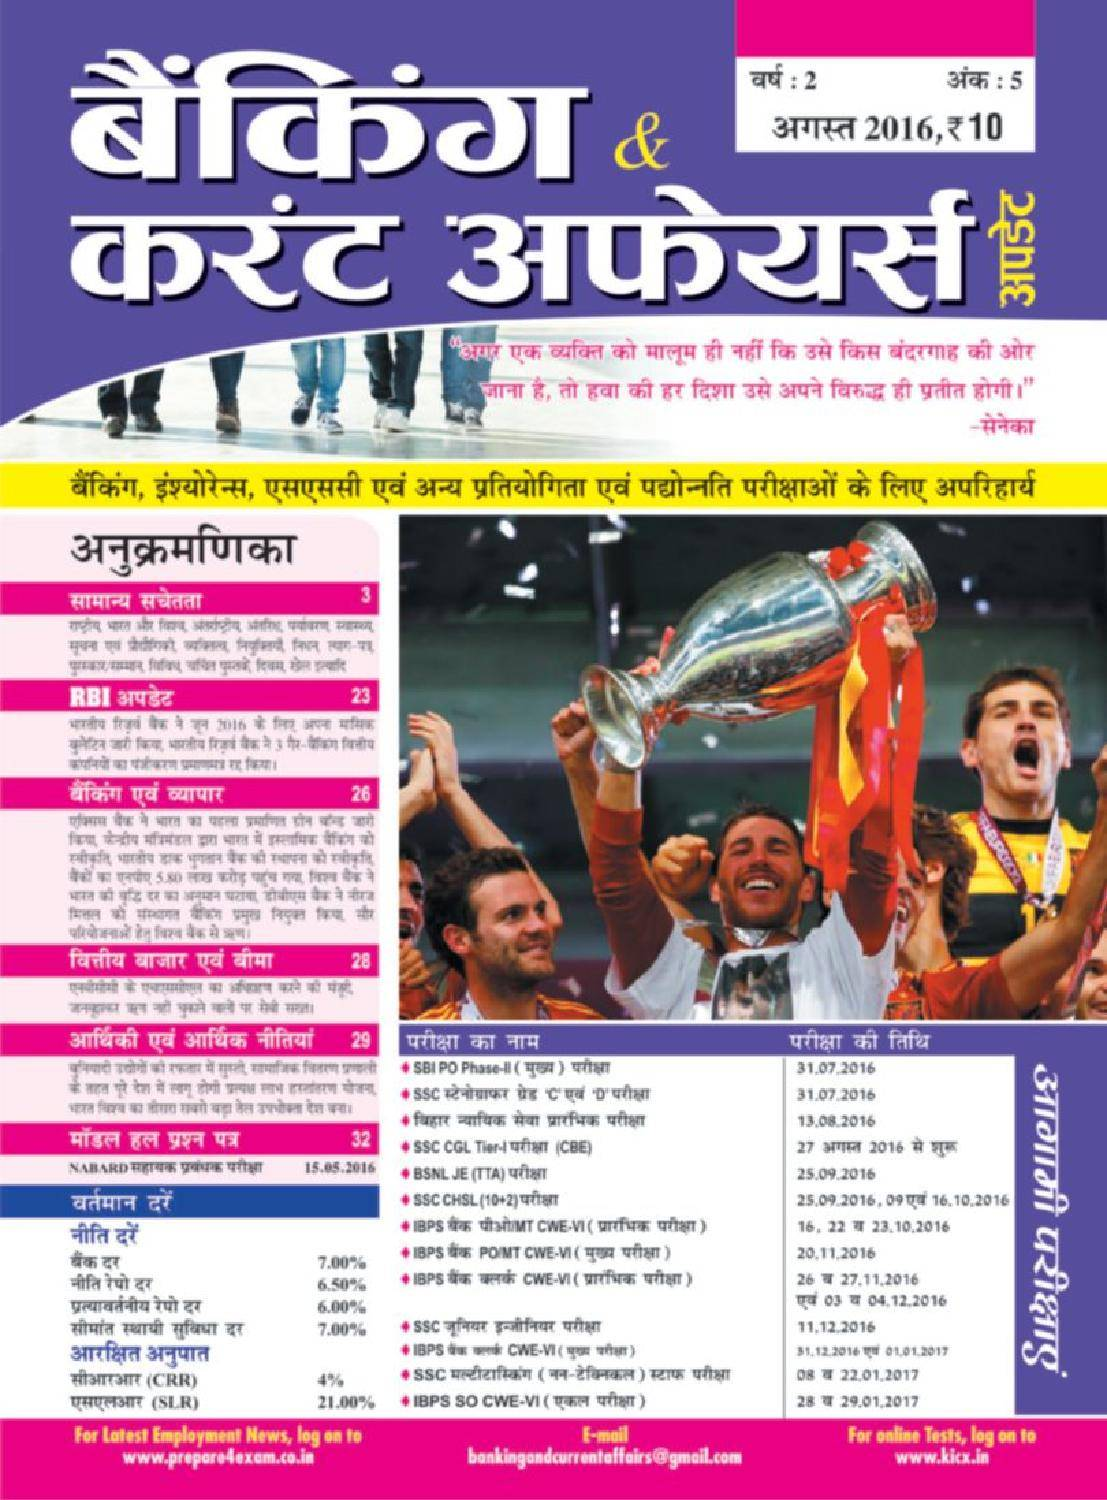 Banking & Current Affairs Update Hindi Edition - अगस्त 2016